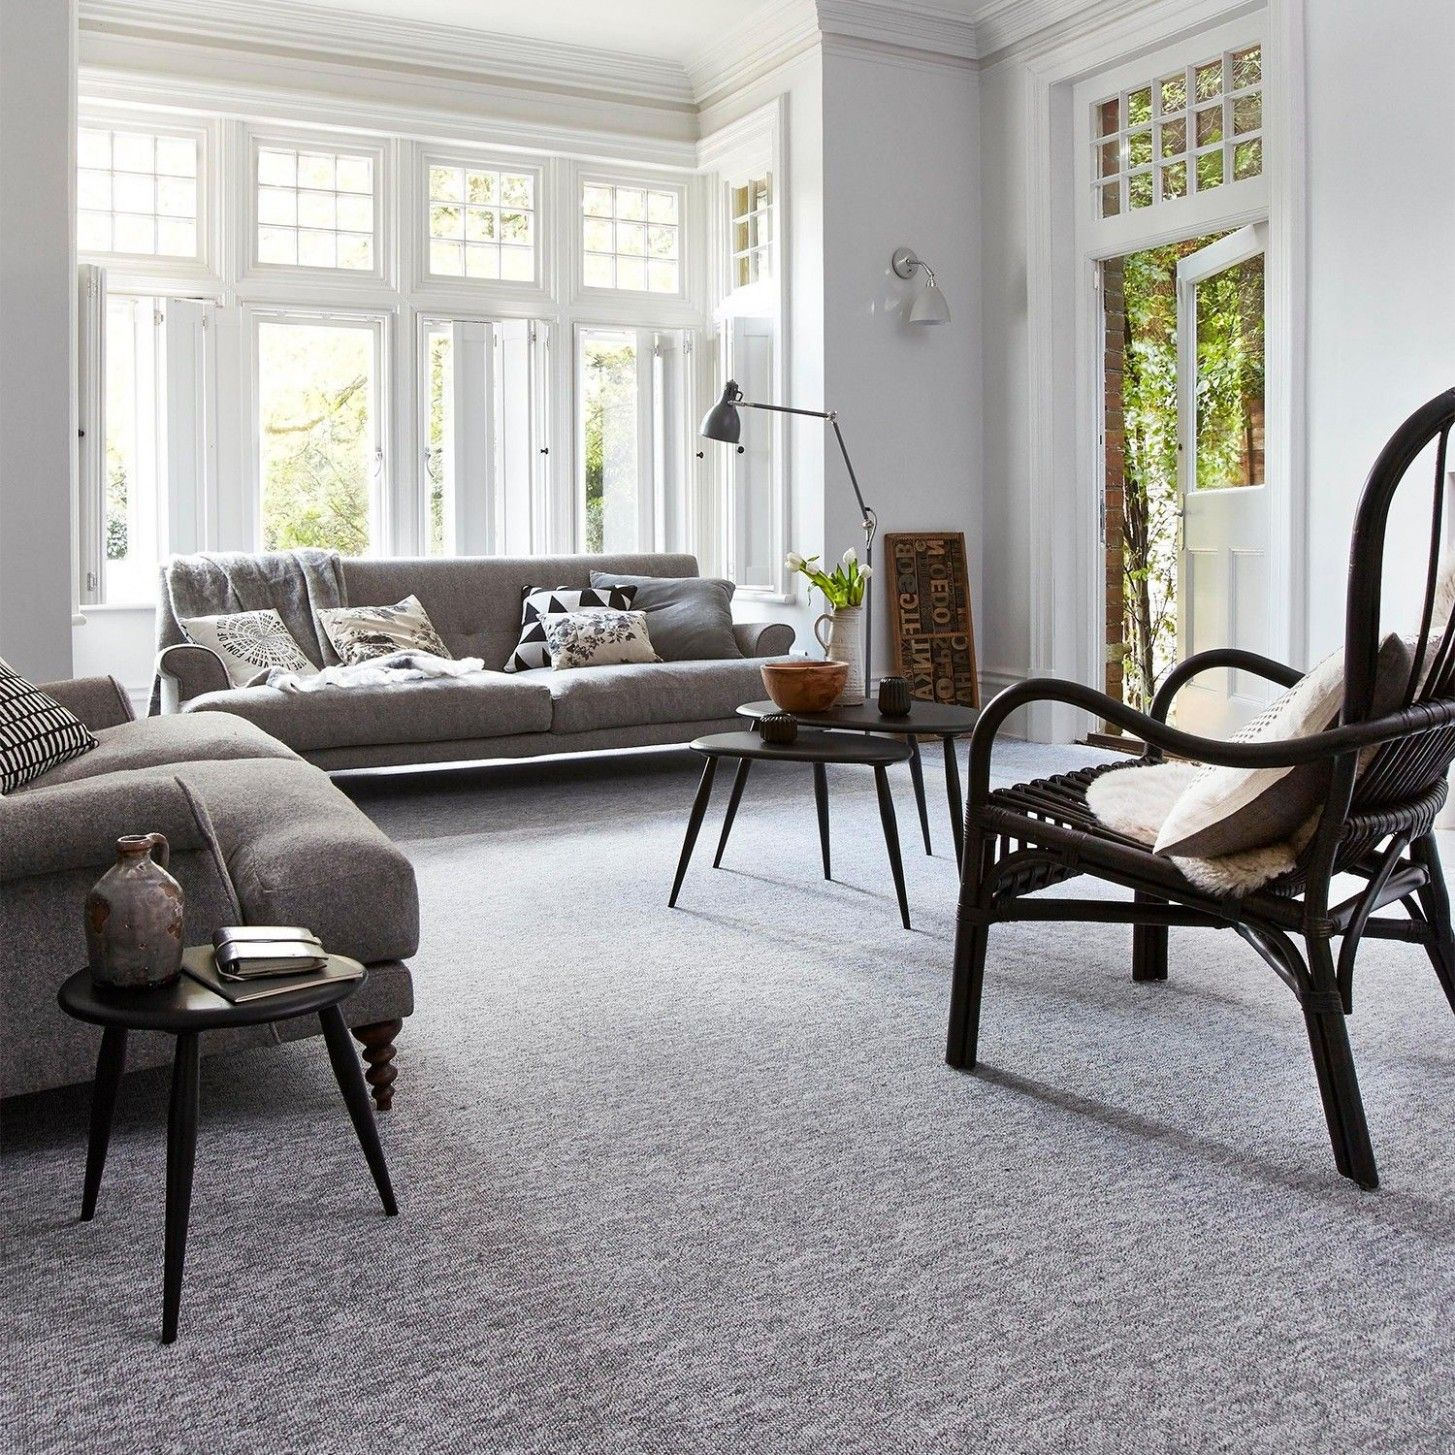 Living Room With Grey Carpet Ideas Grey Carpet Living Room Living Room Carpet Light Gray Carpet